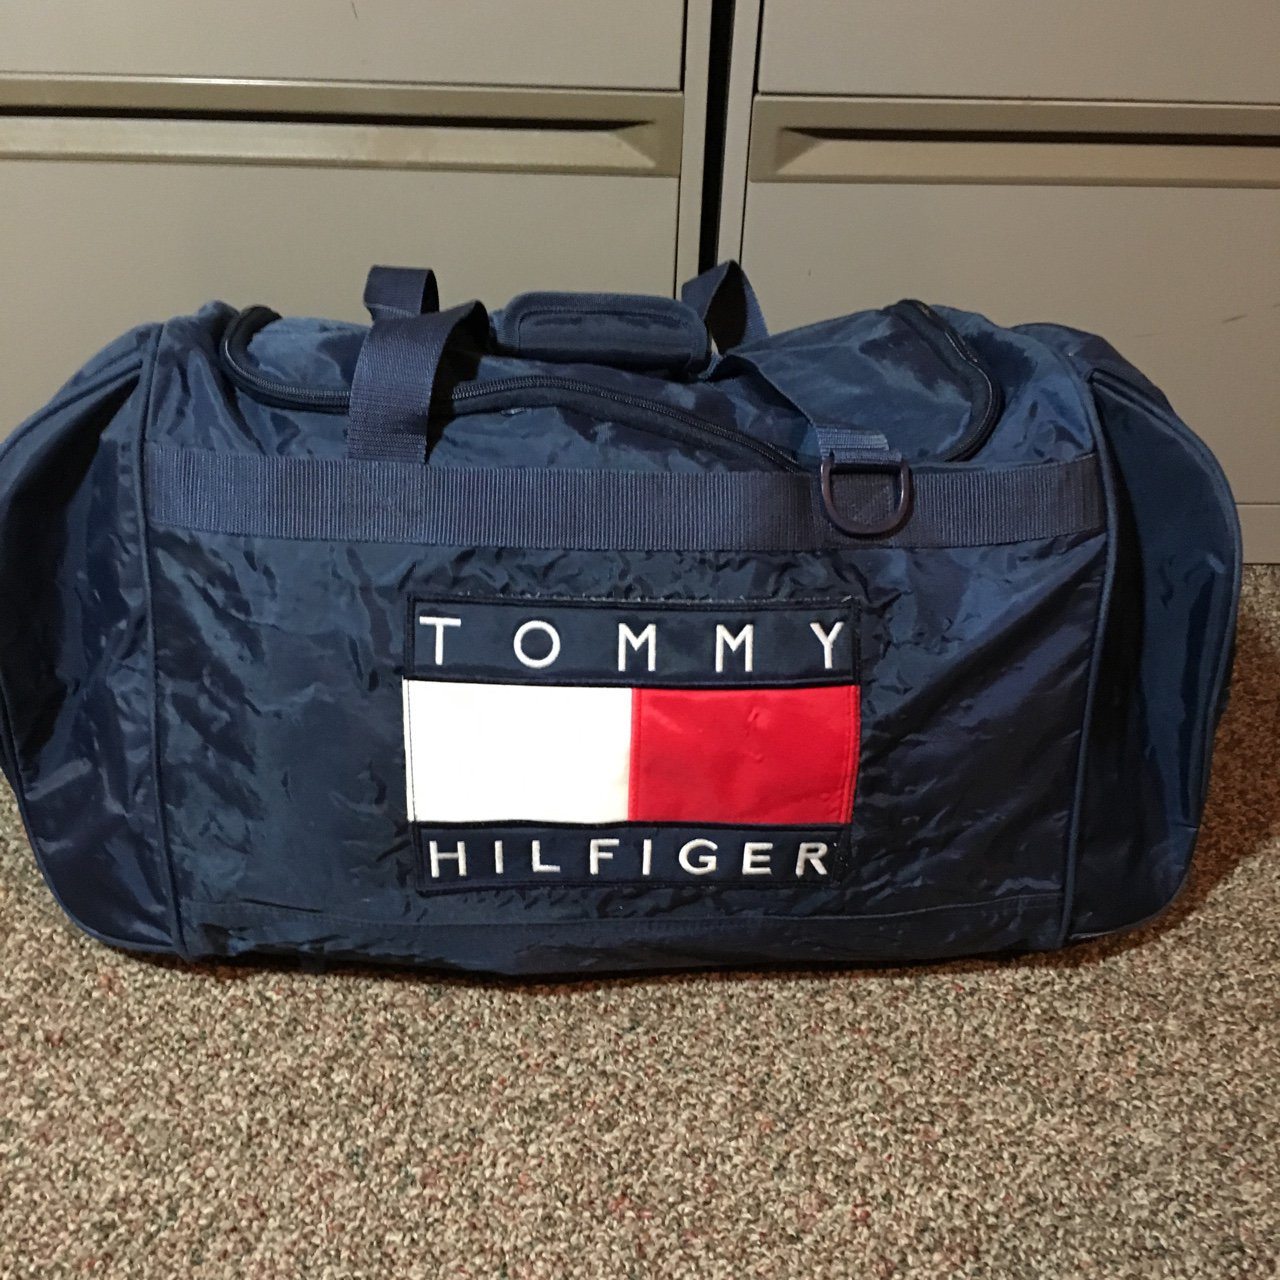 Vintage Tommy Hilfiger Duffle Bag Condition 9 10 Secure The - Depop